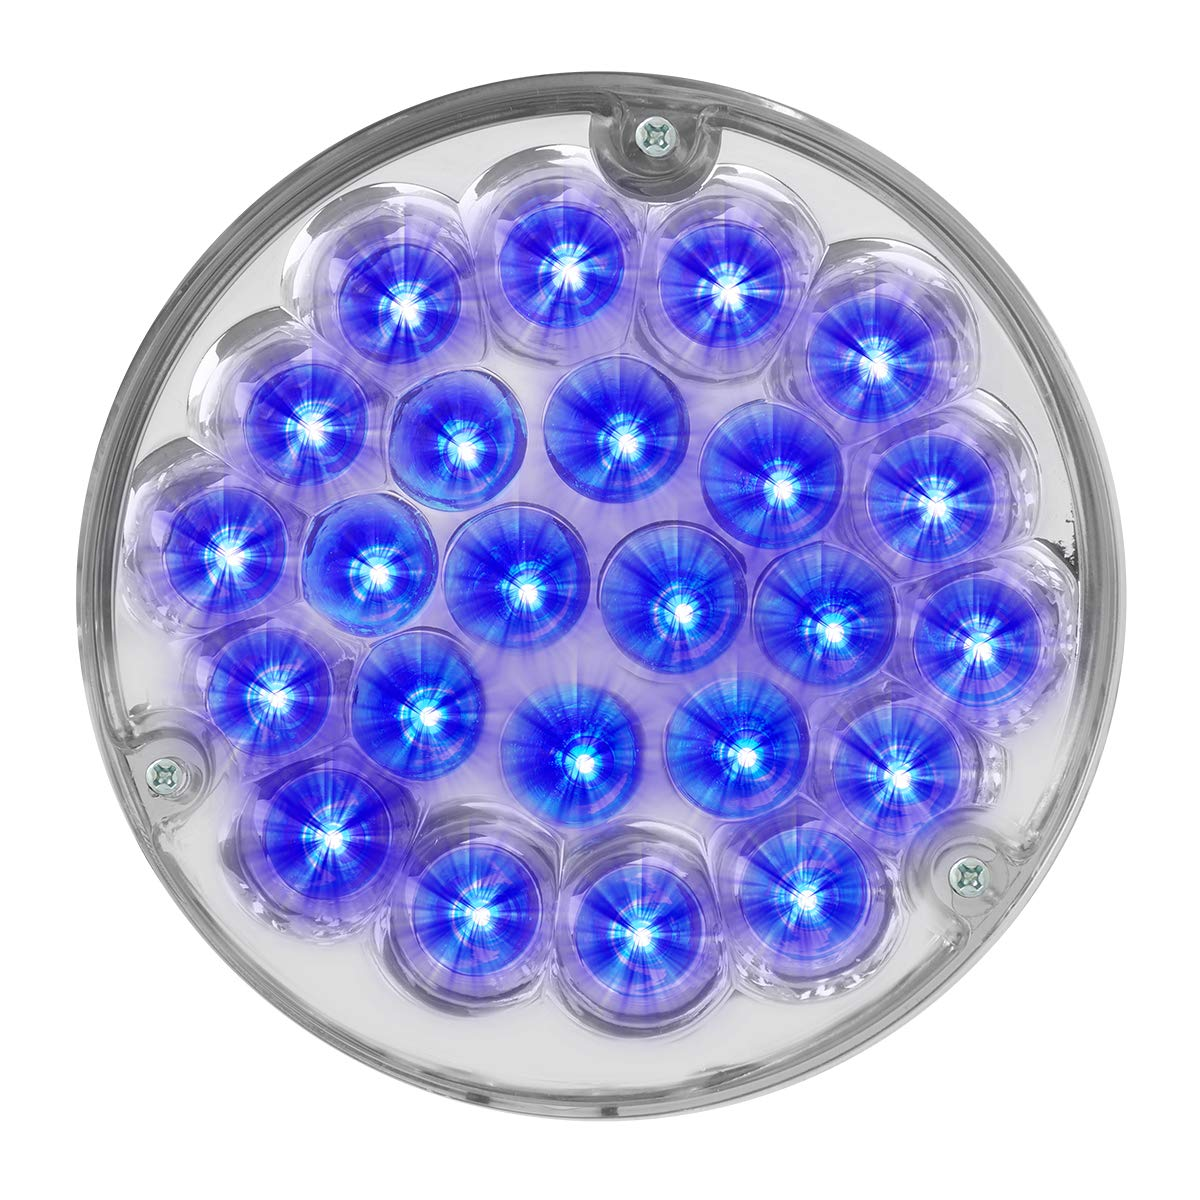 GG Grand General 82277 LED Light (4'' Pearl Blue 24 with Clear Die Cast Housing) by GG Grand General